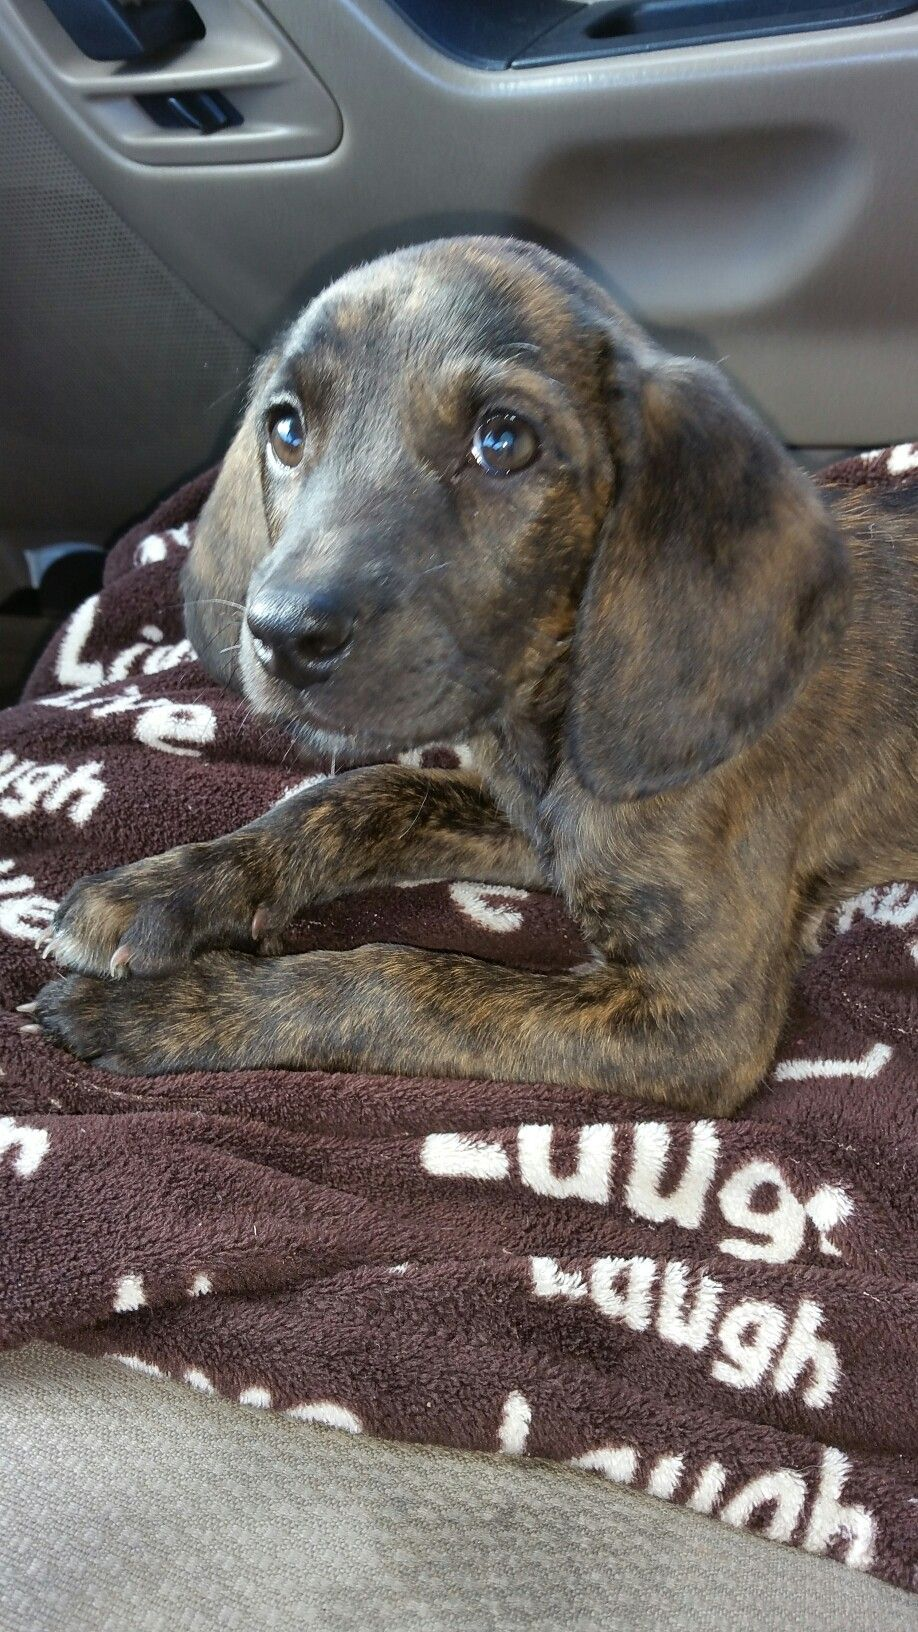 Plott hound puppy #plotthound